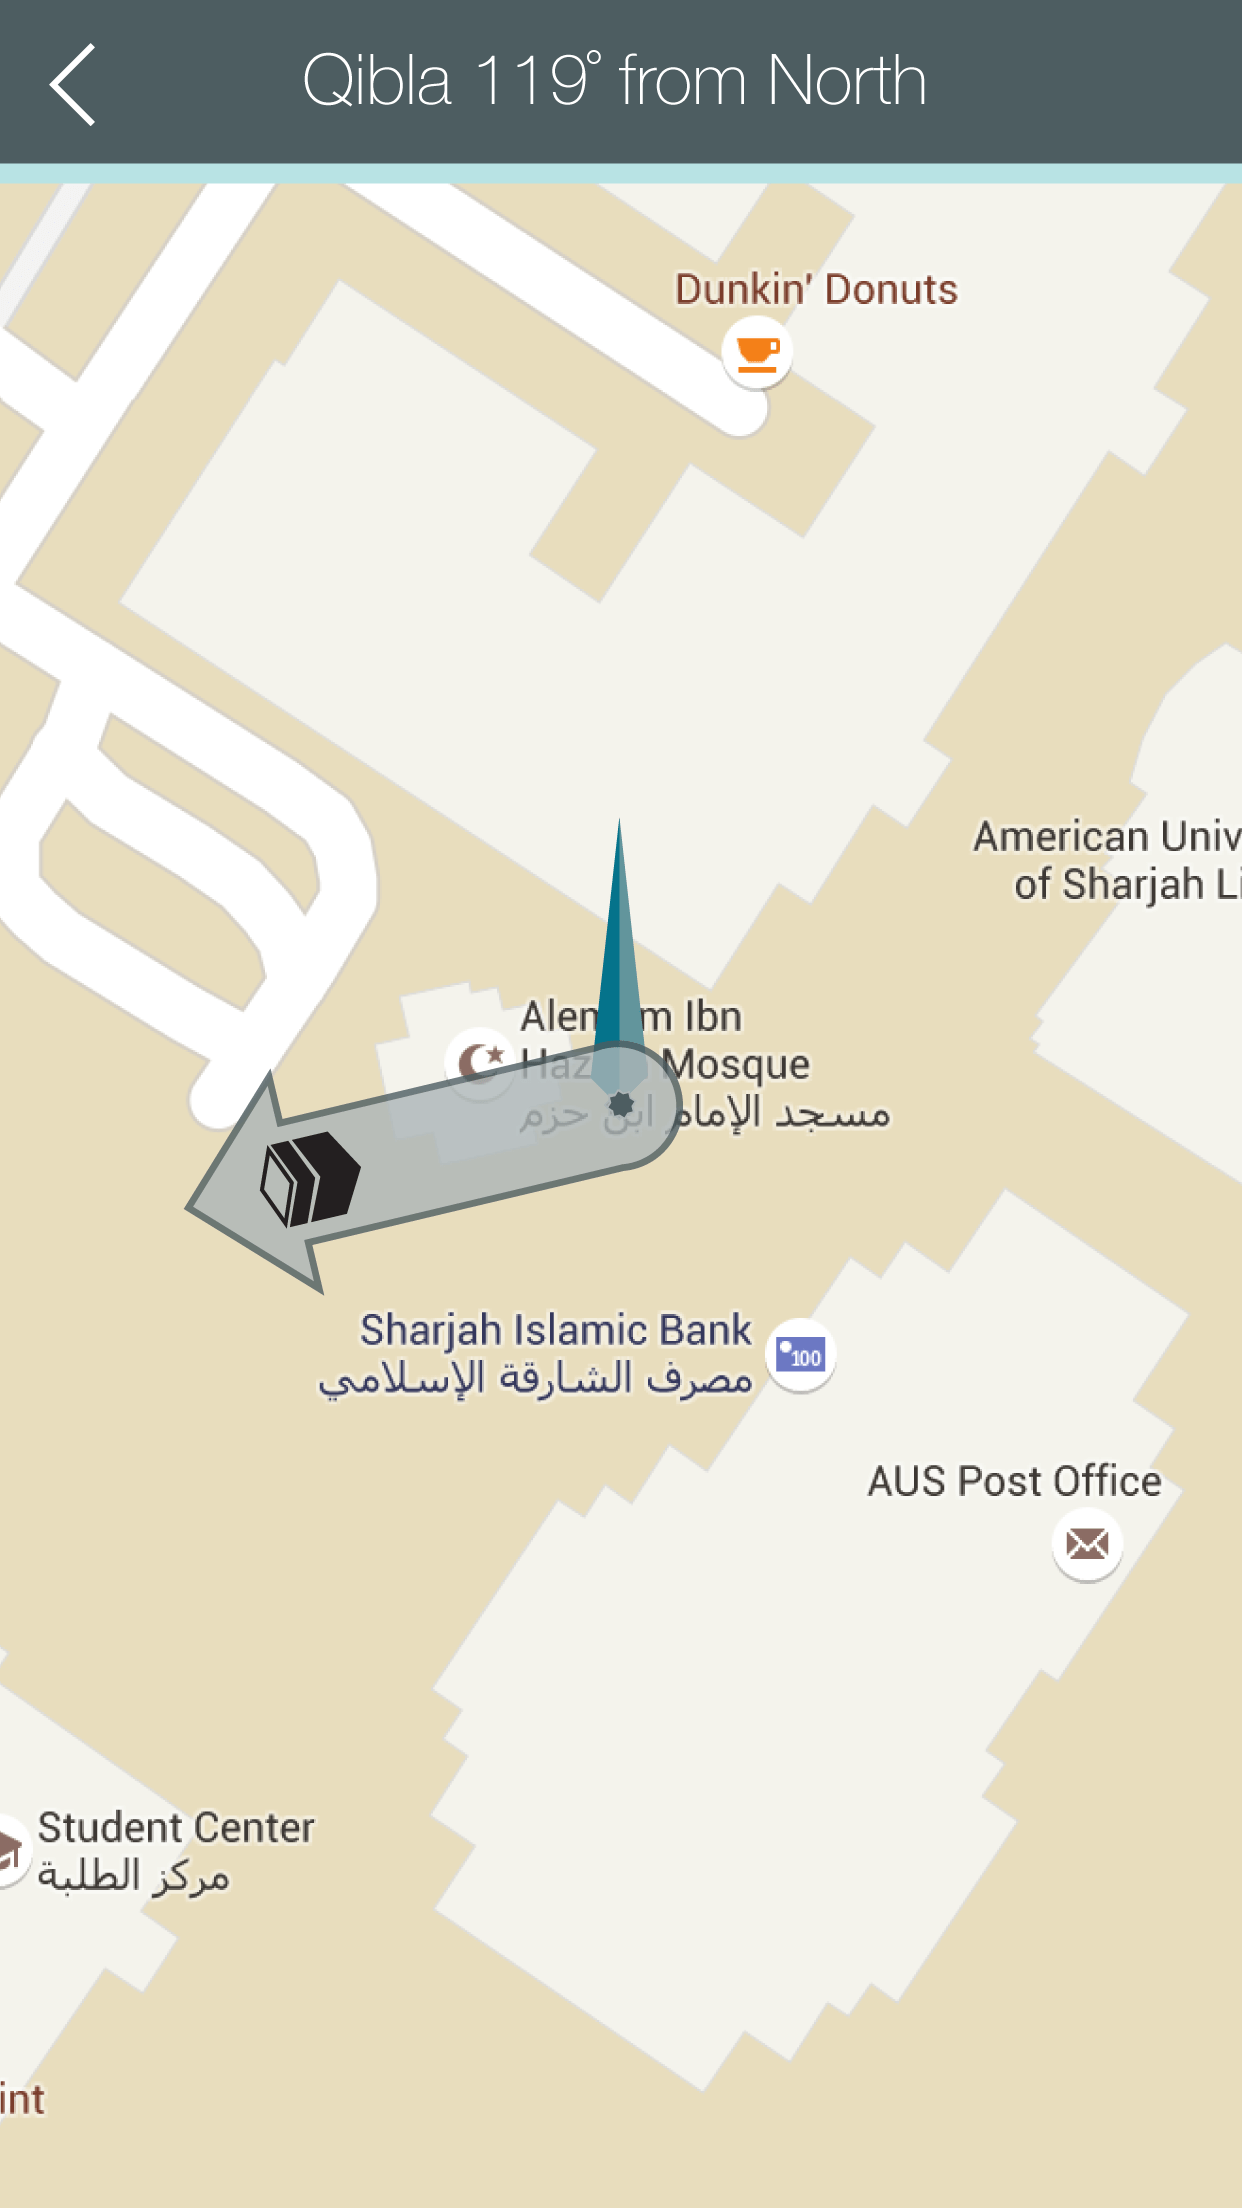 Android how to point Qibla direction on Google map   Stack Overflow